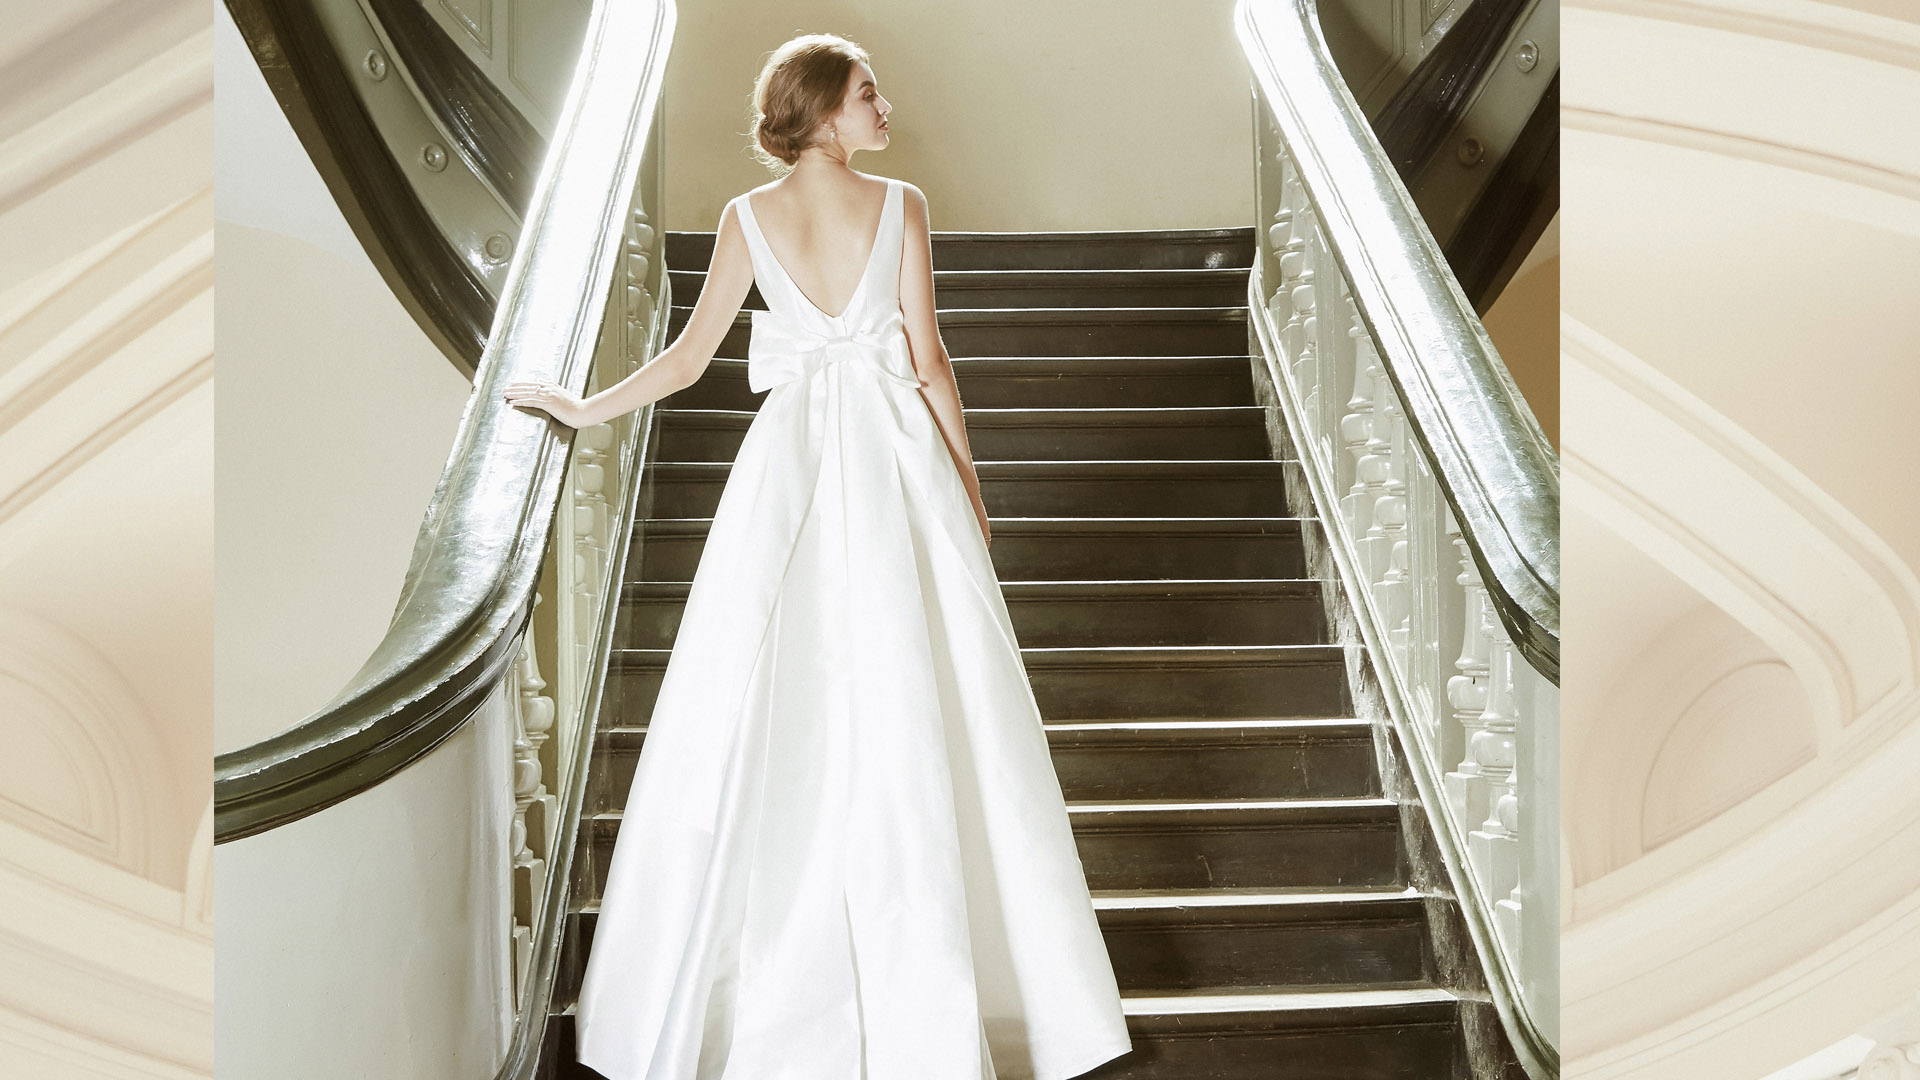 February lookbook: The Glam Bride